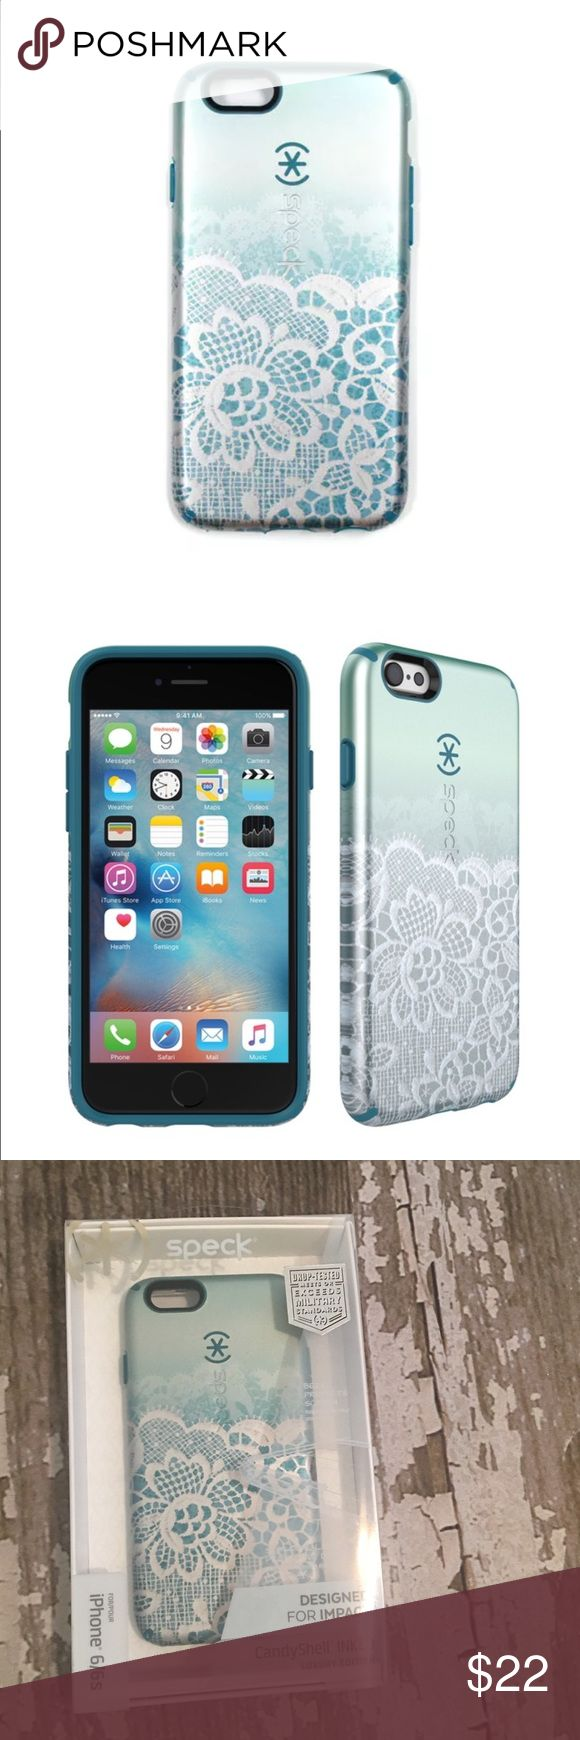 NEW Speck IPhone 6 6S Inked Candyshell Case NEW Speck IPhone 6 6S Candyshell Inked, Luxury Special Edition Cover/Case. Scalloped Lace/Atlantic Blue. Makes a great stocking stuffer Bundle to Save More! speck Accessories Phone Cases